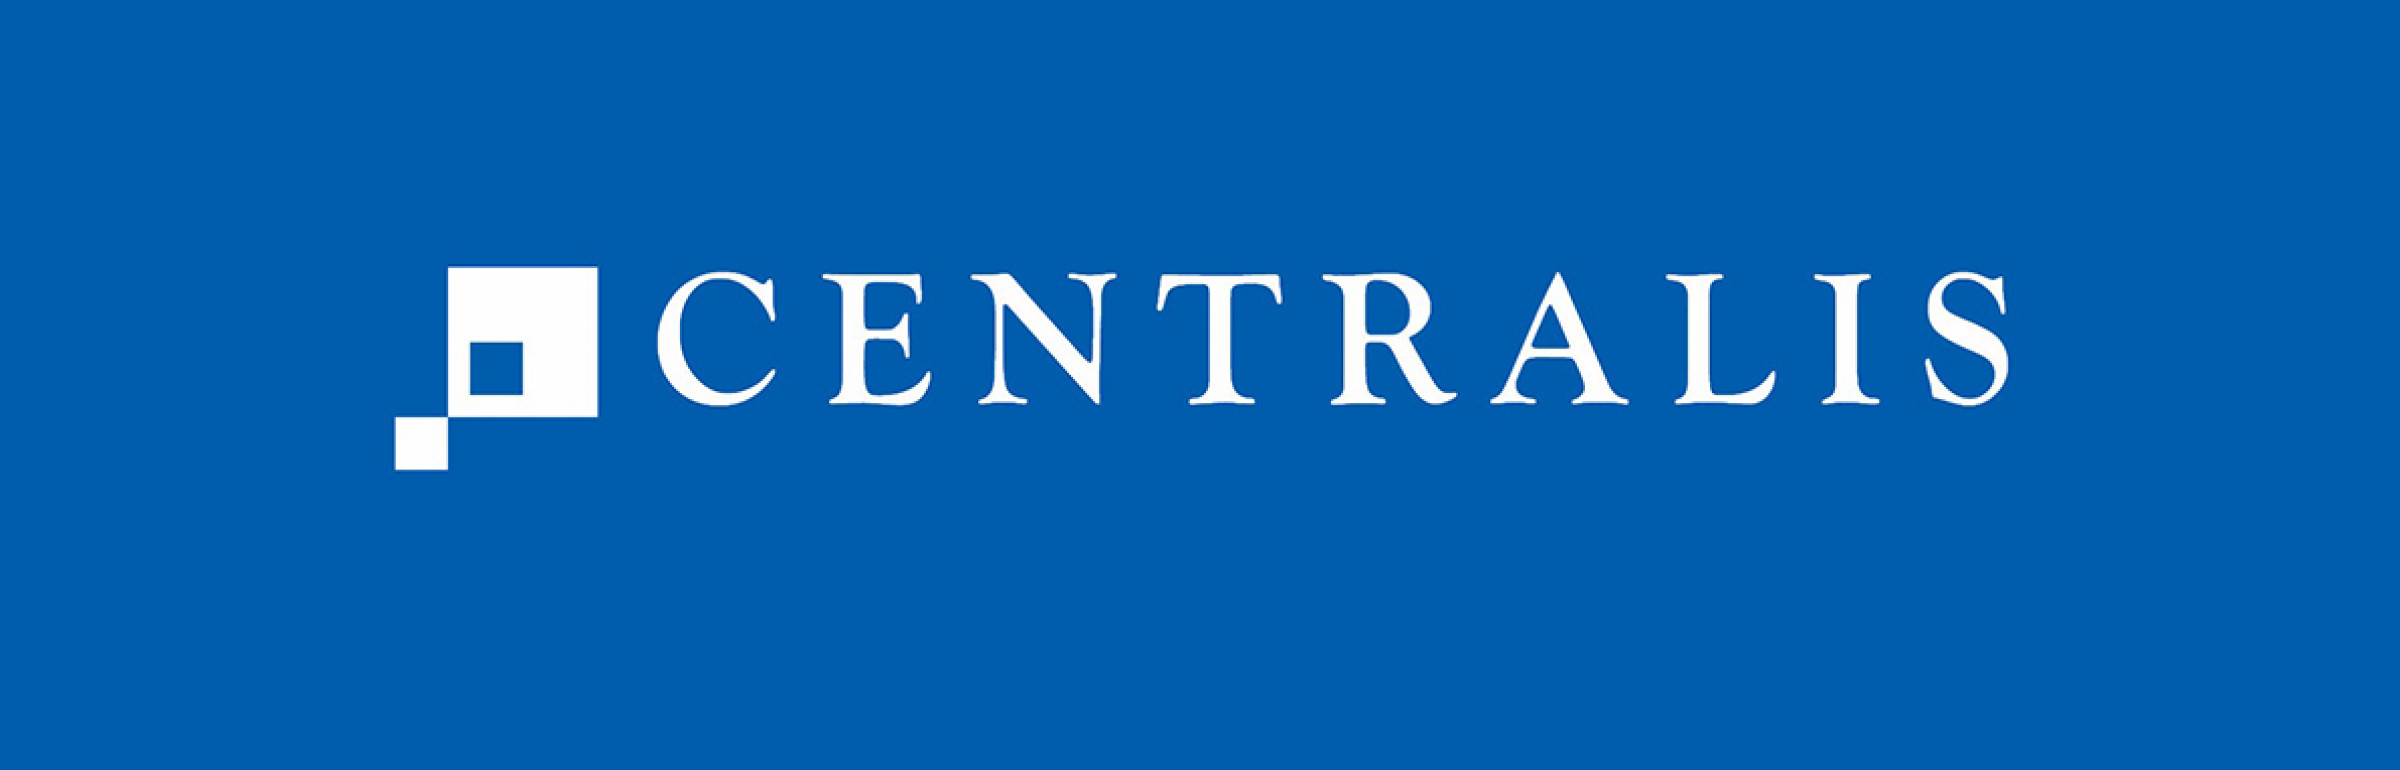 Banner CENTRALIS GROUP